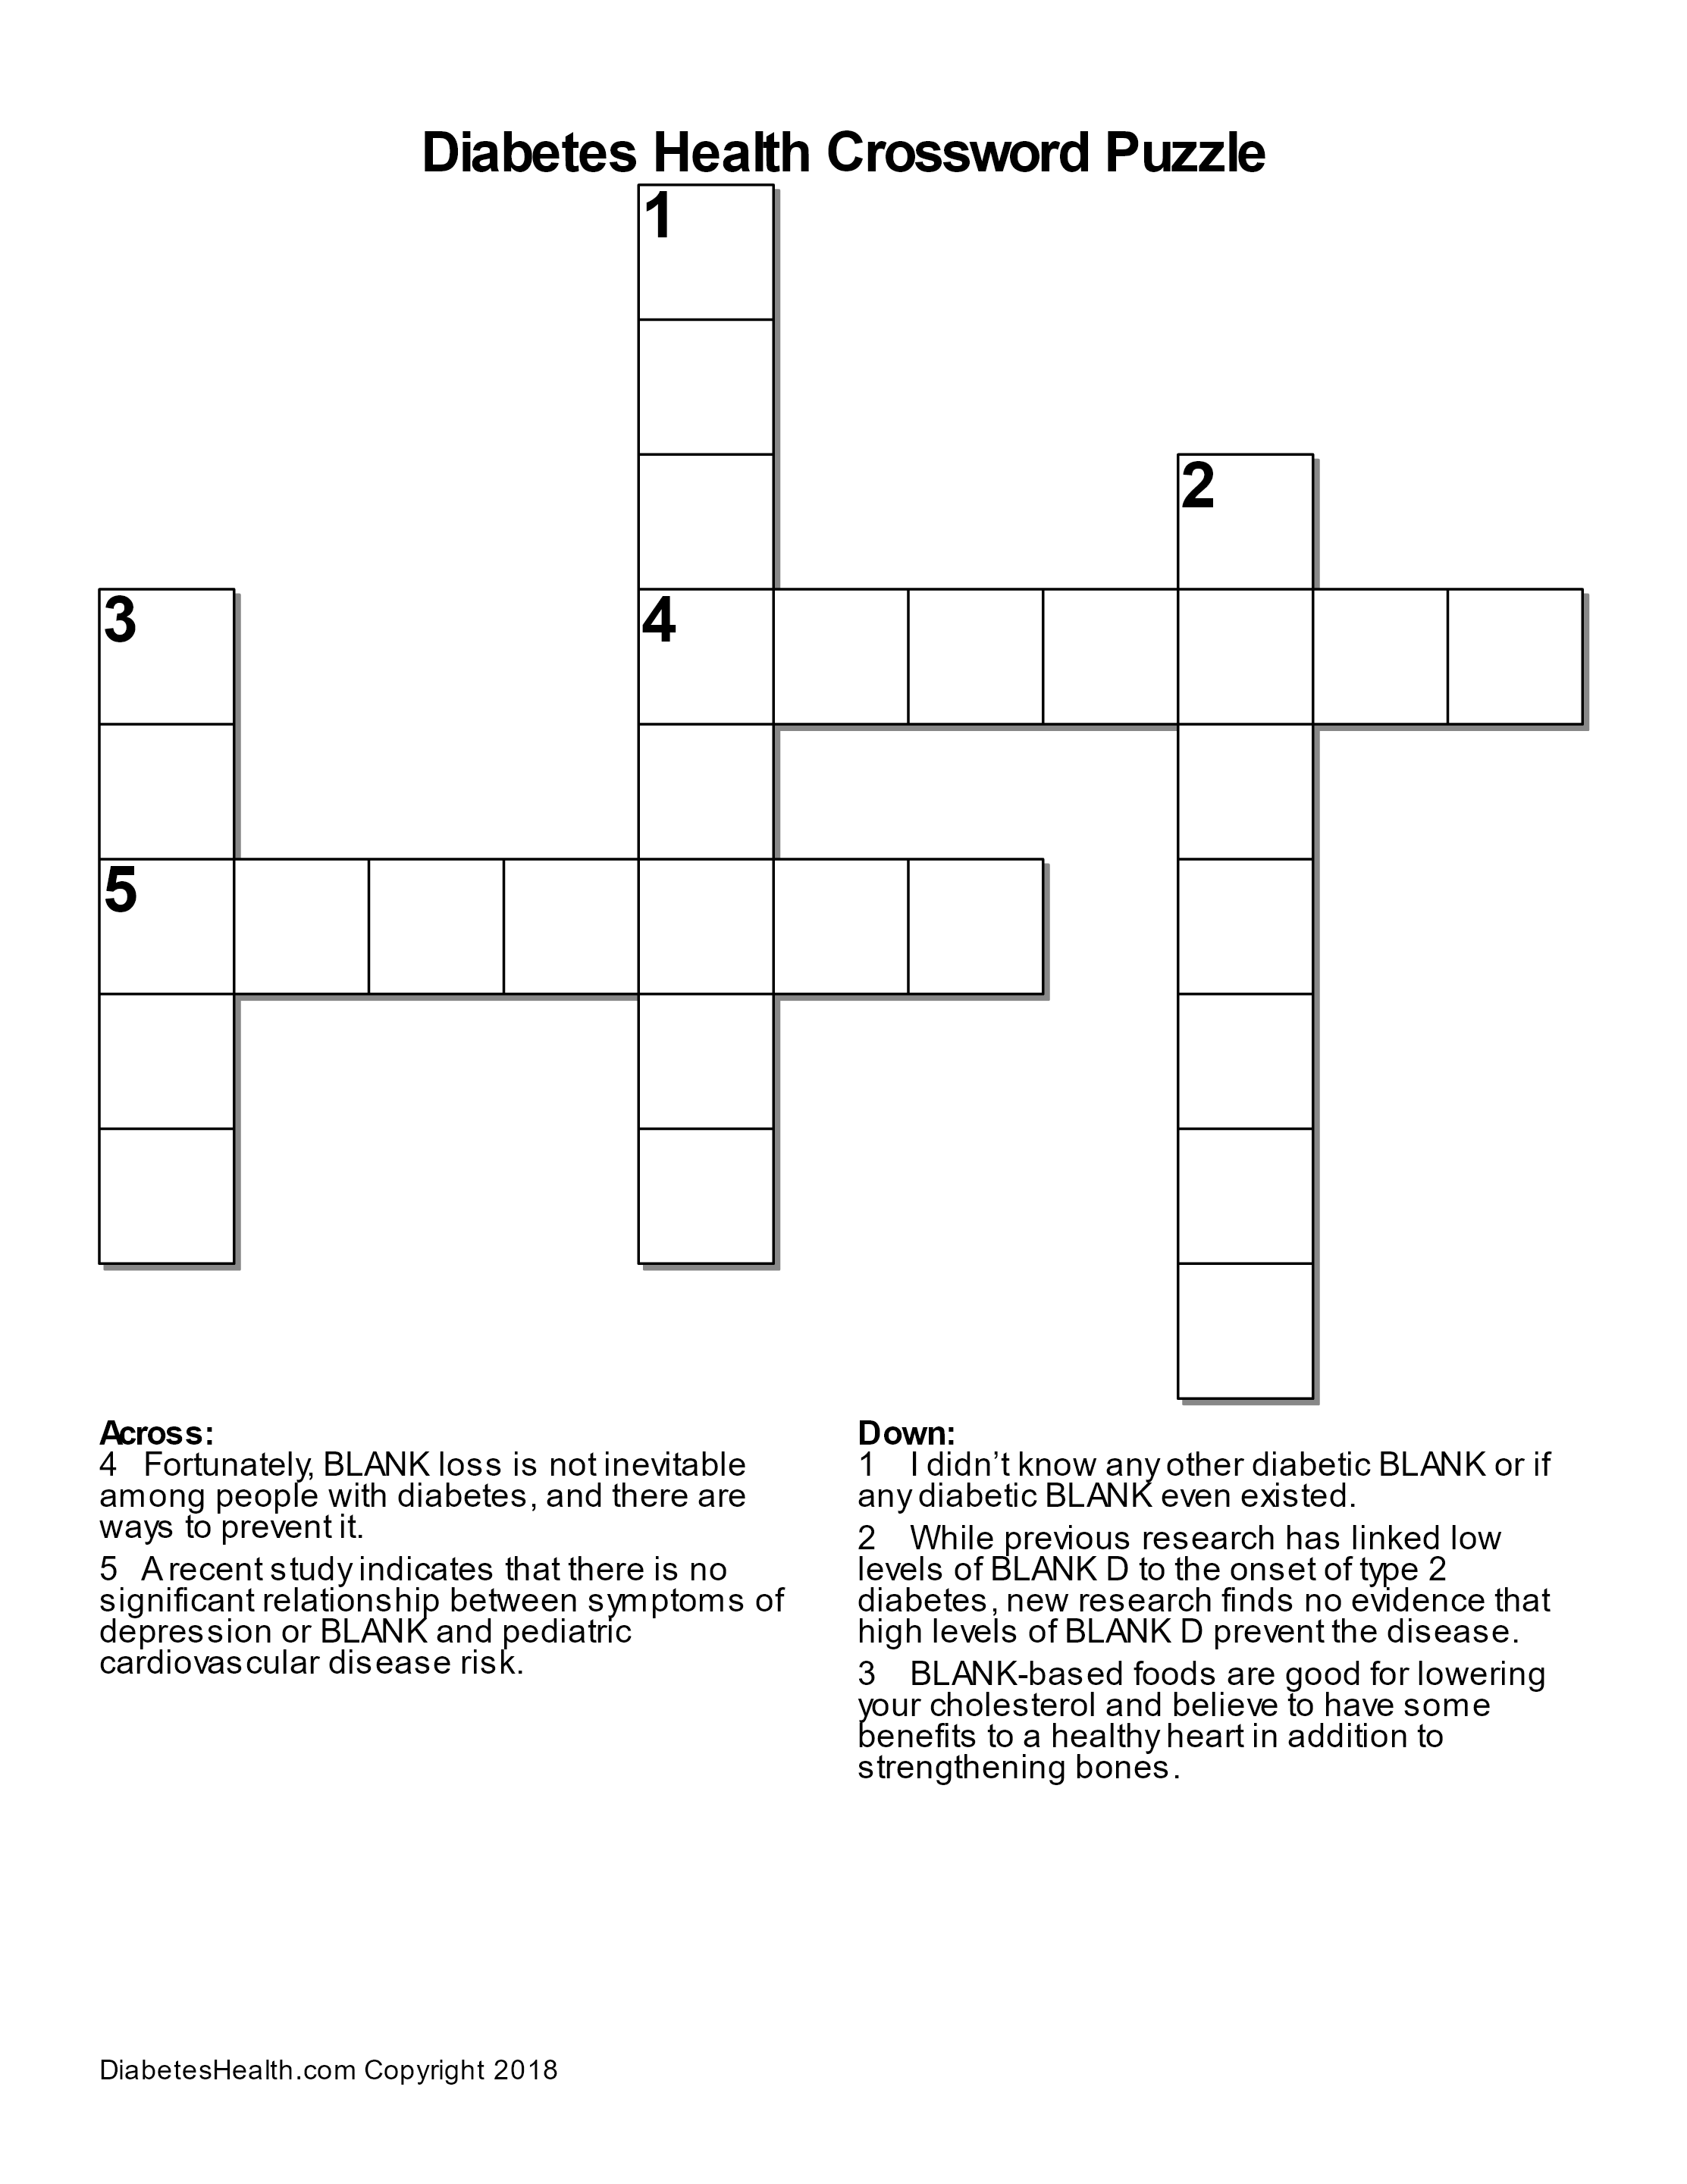 Diabetes Health Crossword Puzzle Diabetes Health